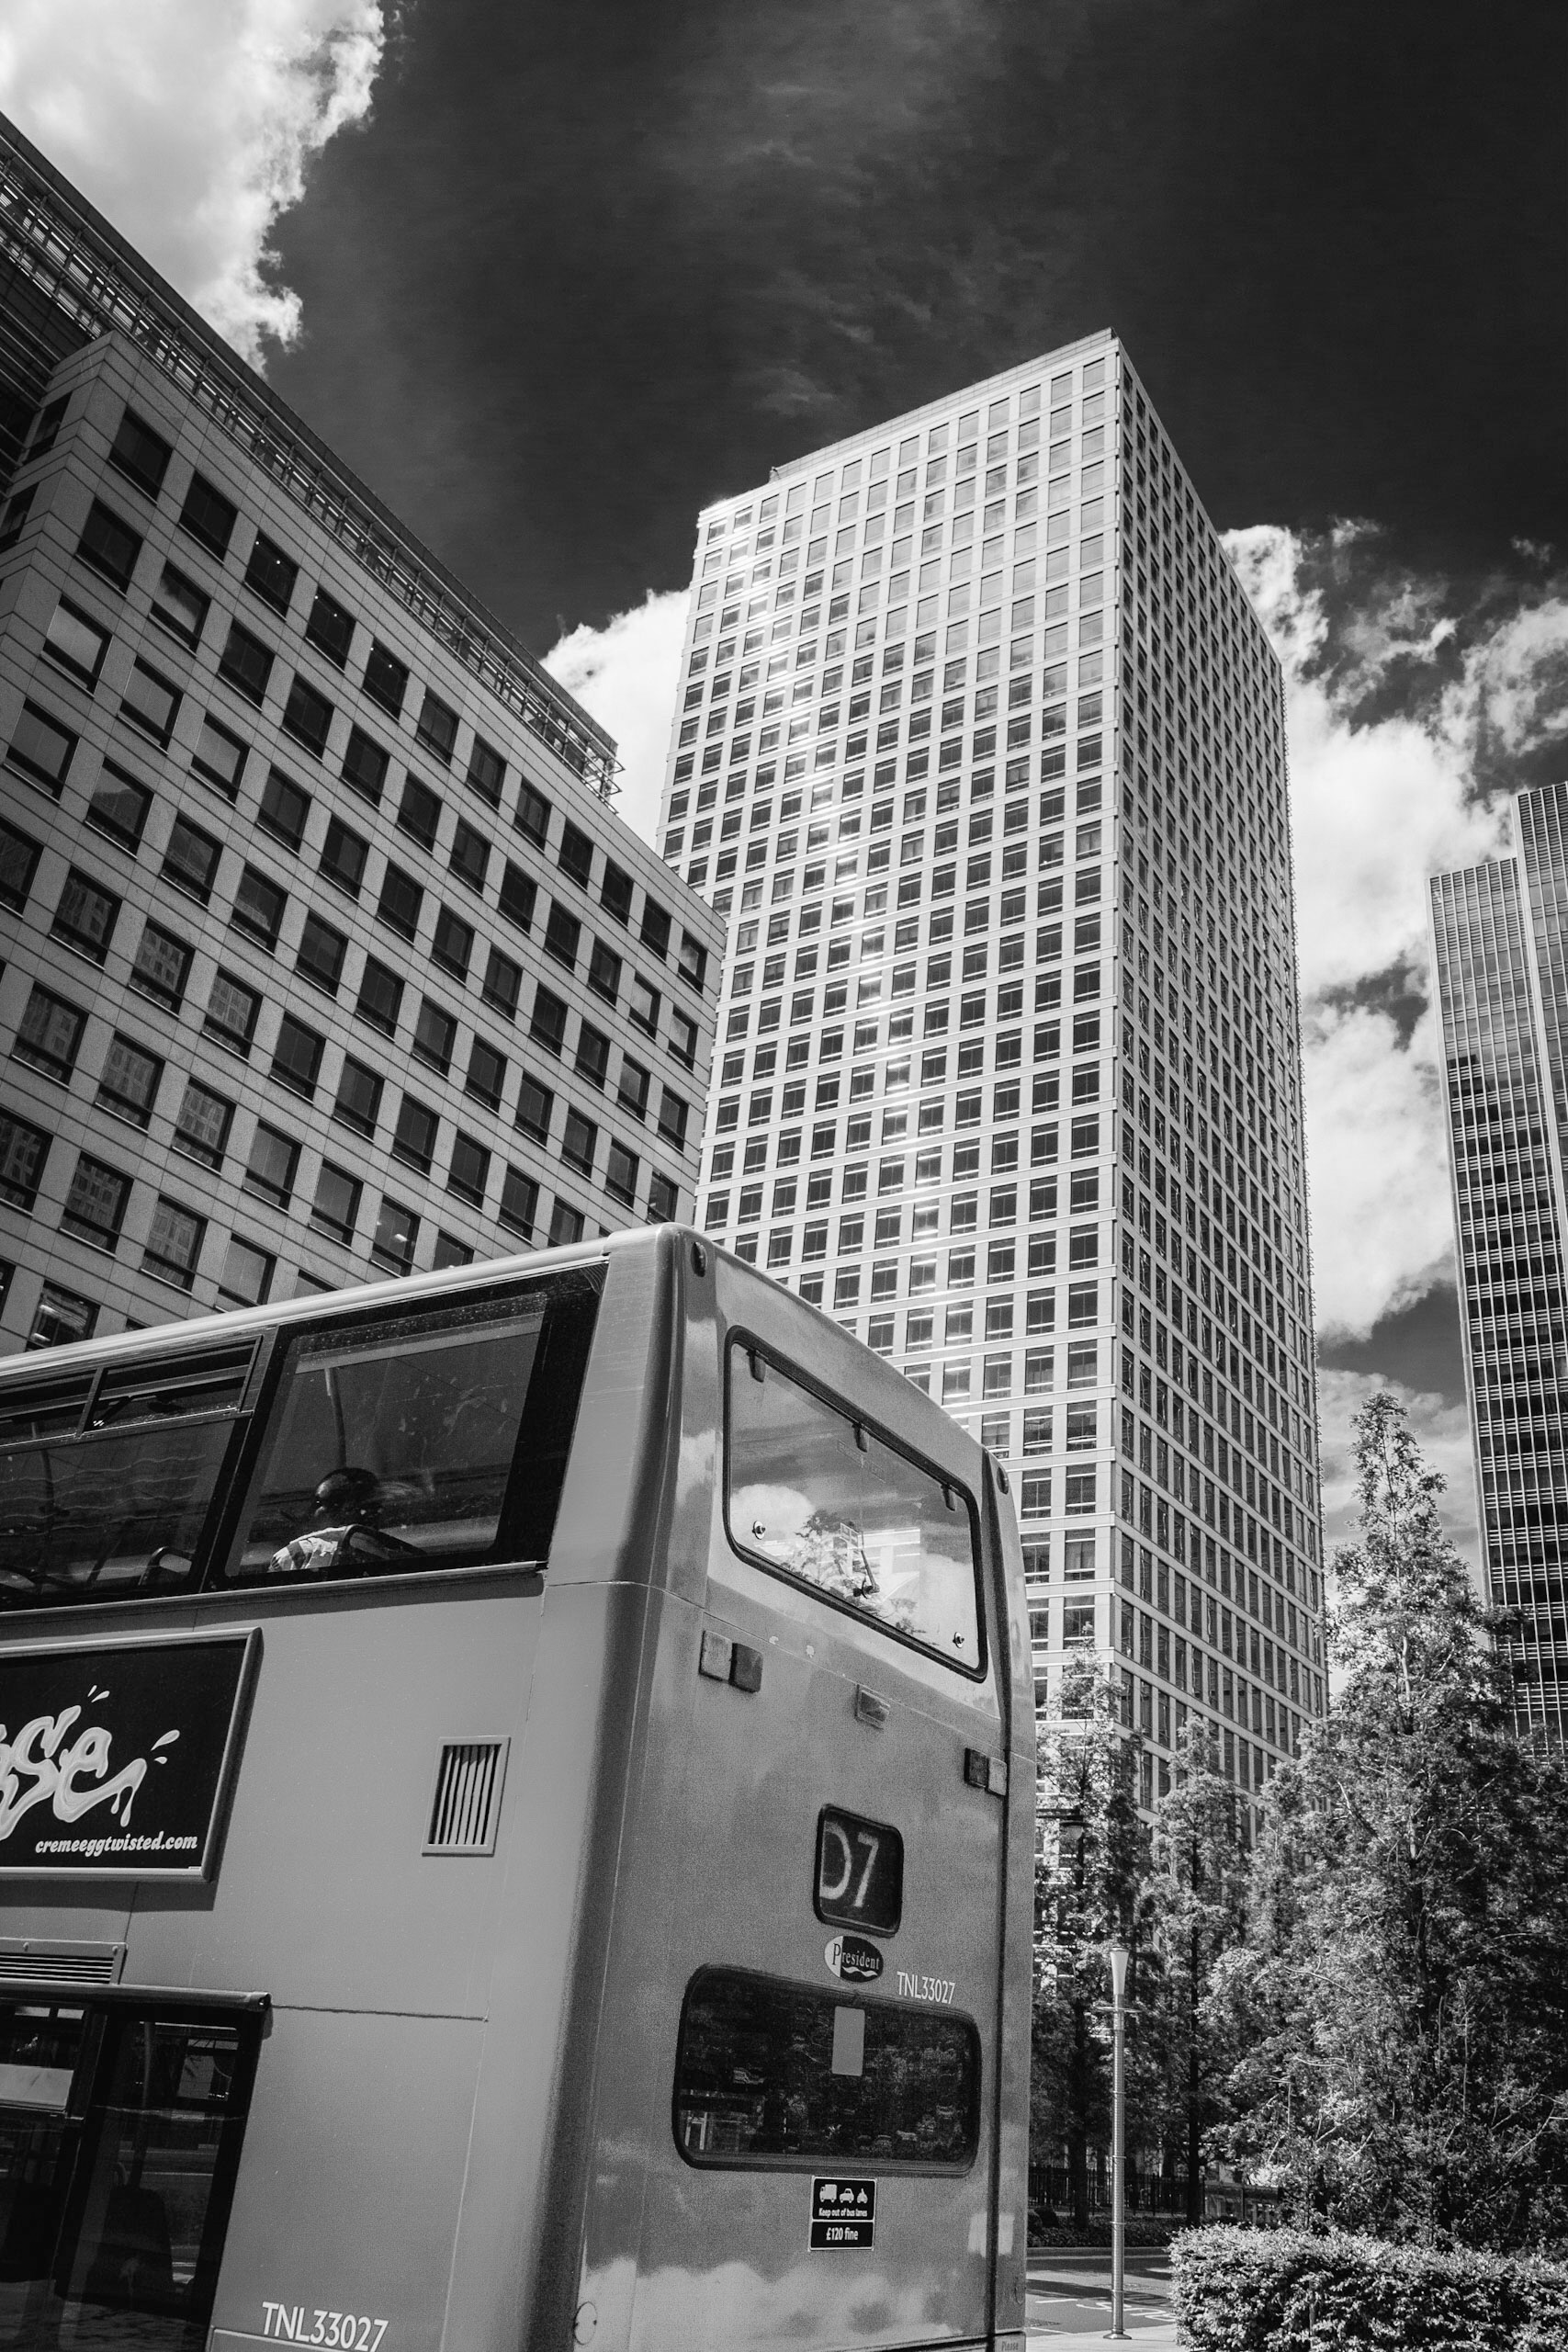 Picture of a red London Bus by photographer Rick McEvoy